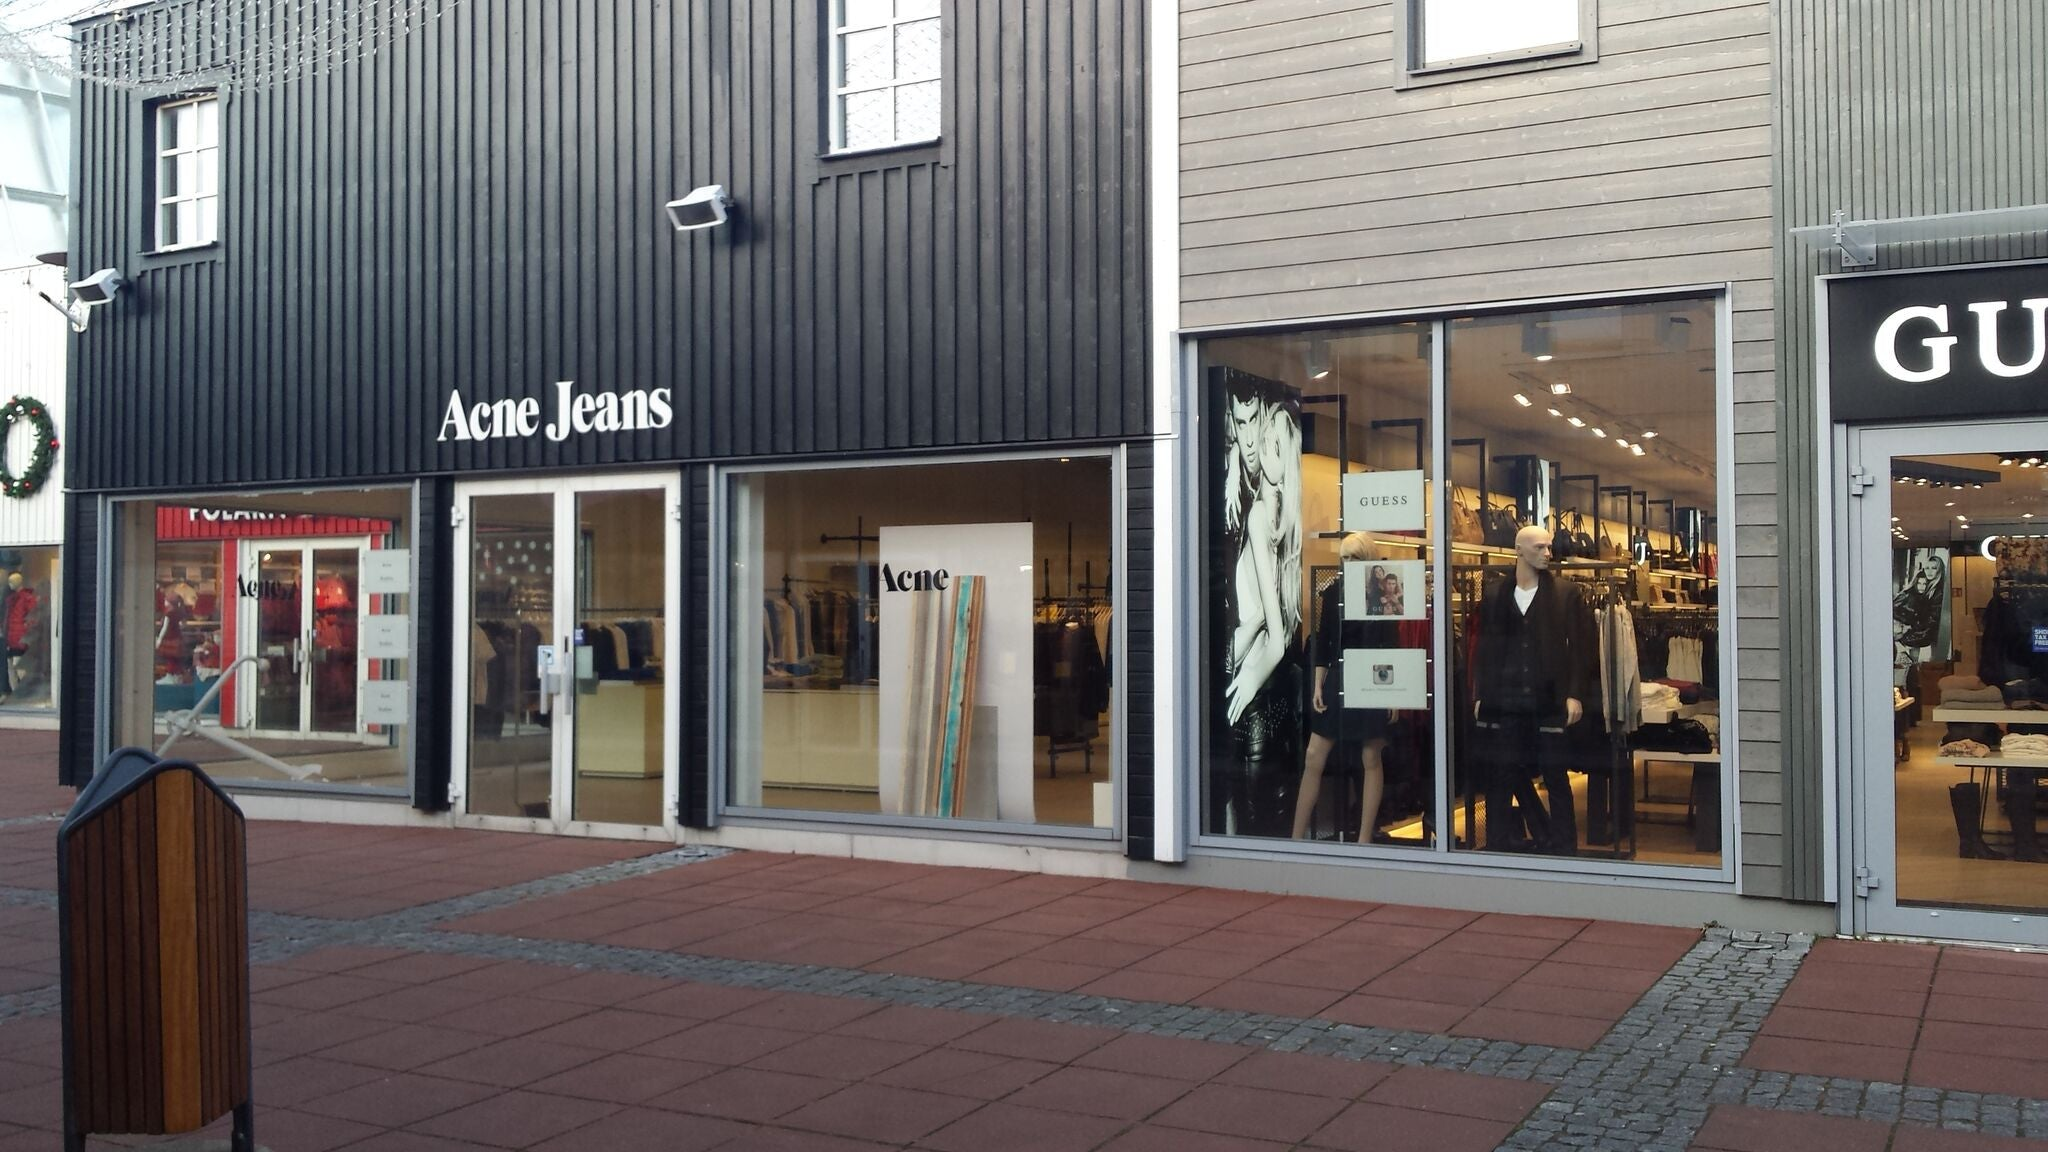 outlet store kungsbacka